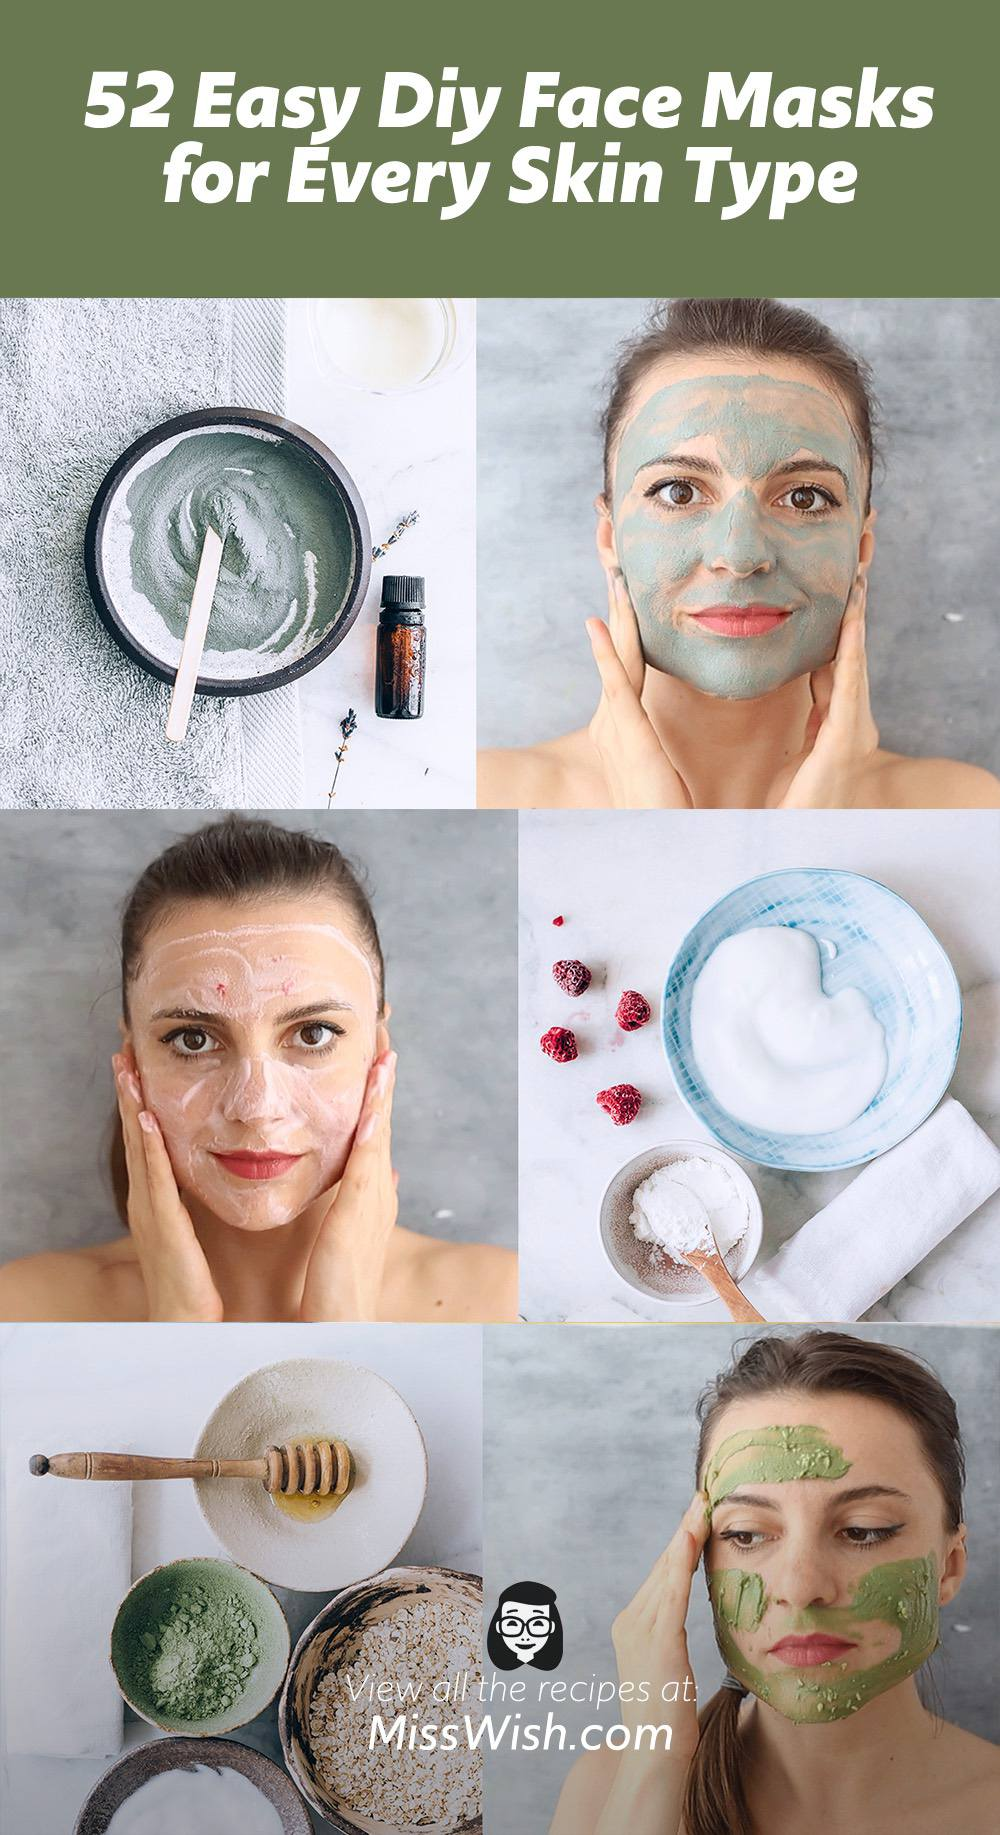 52 Easy Diy Face Masks for Every Skin Type